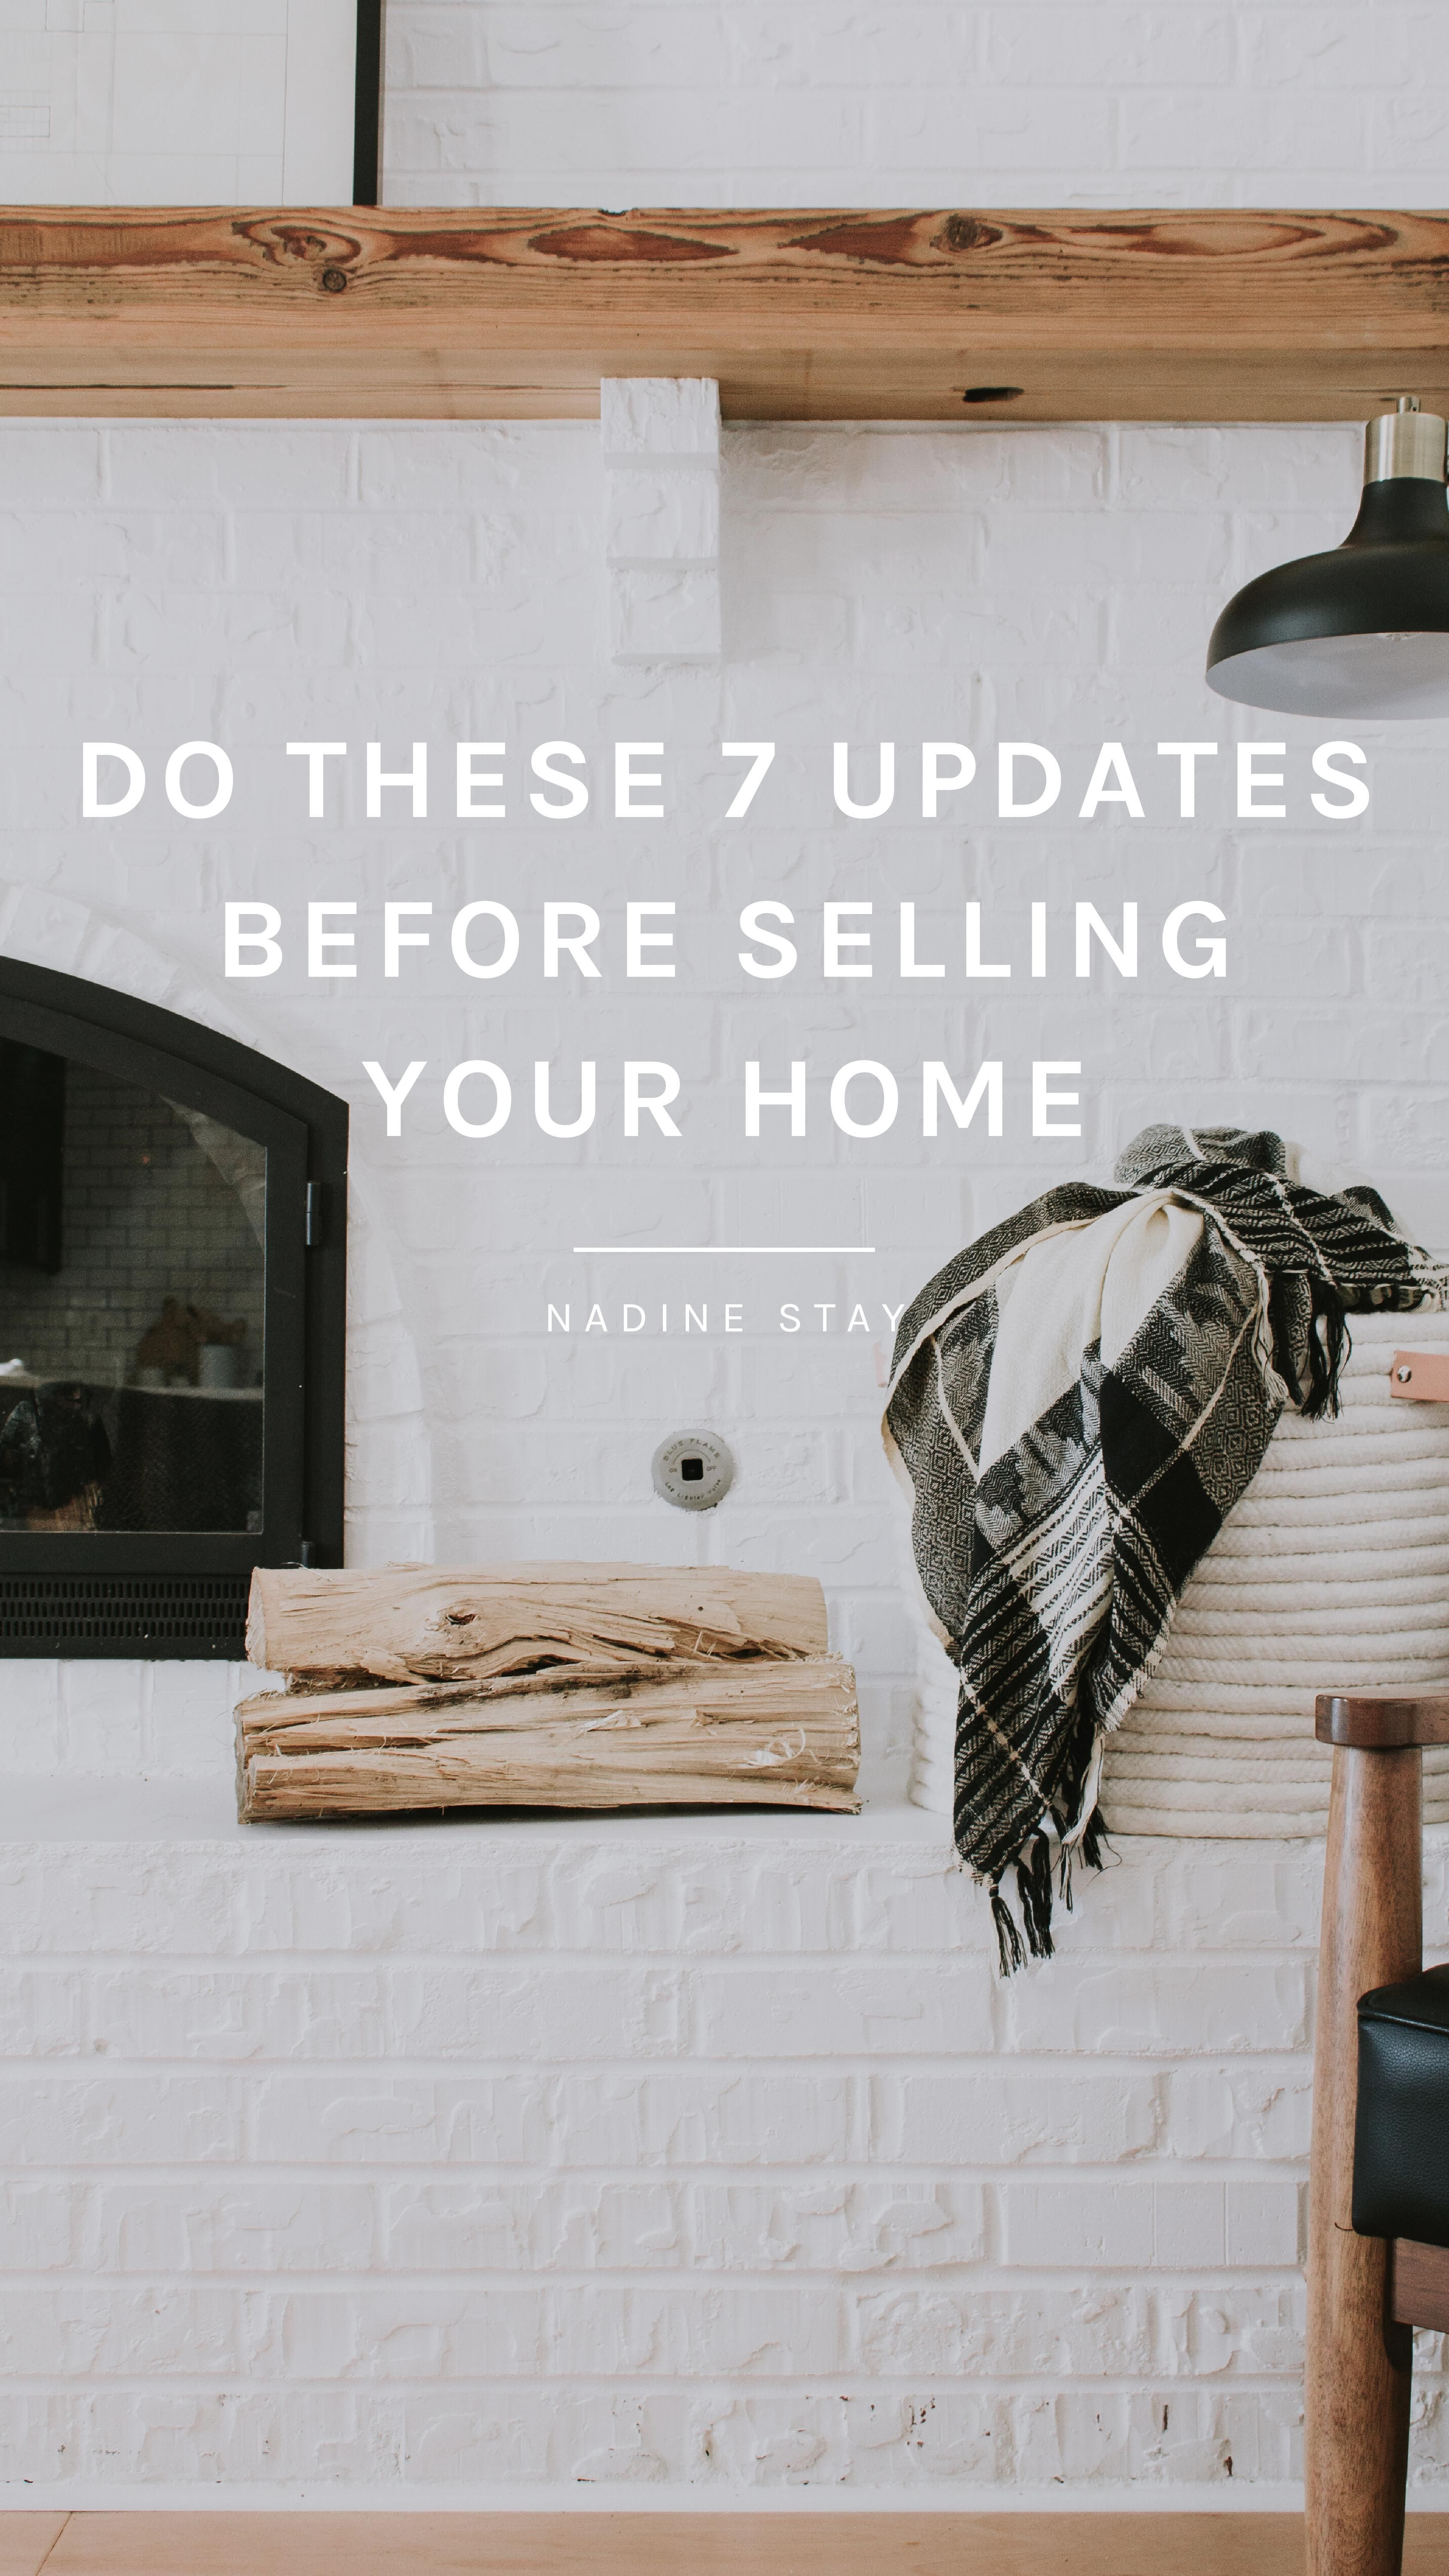 7 UPDATES YOU SHOULD DO BEFORE SELLING YOUR HOME Nadine